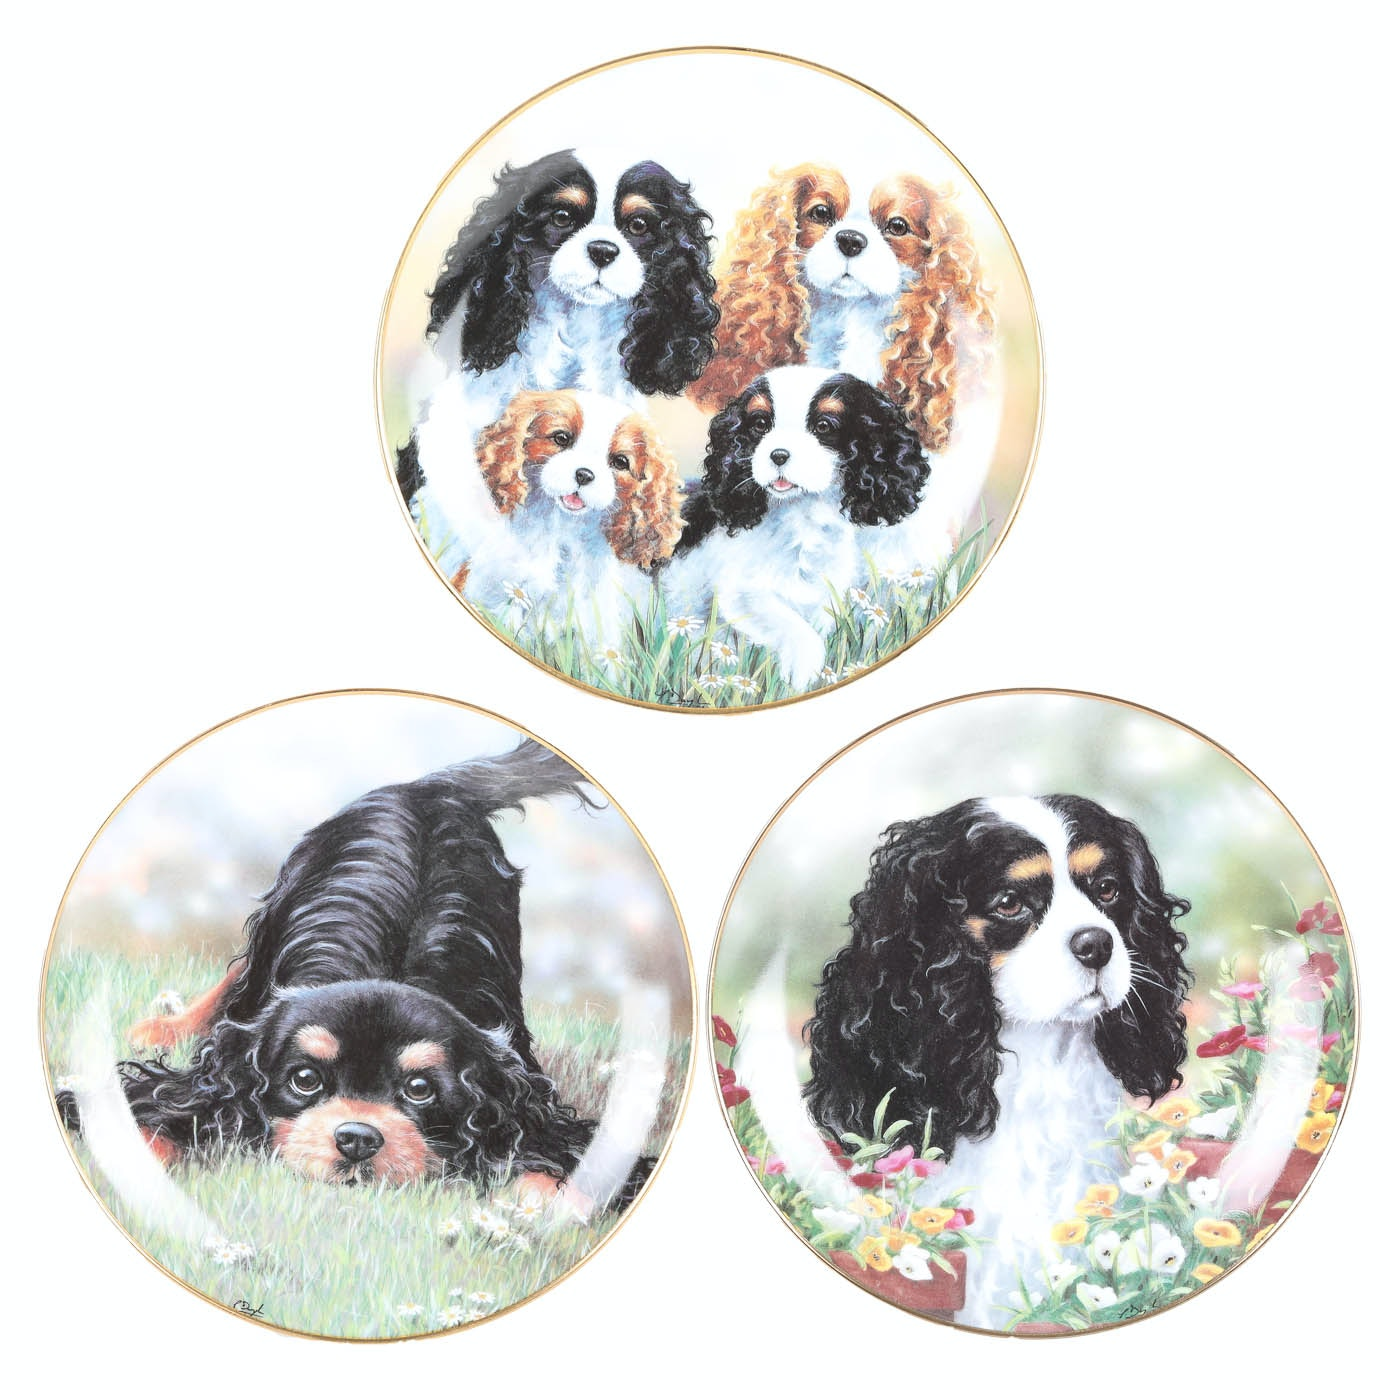 Caviler King Charles Spaniel Collectible Plates